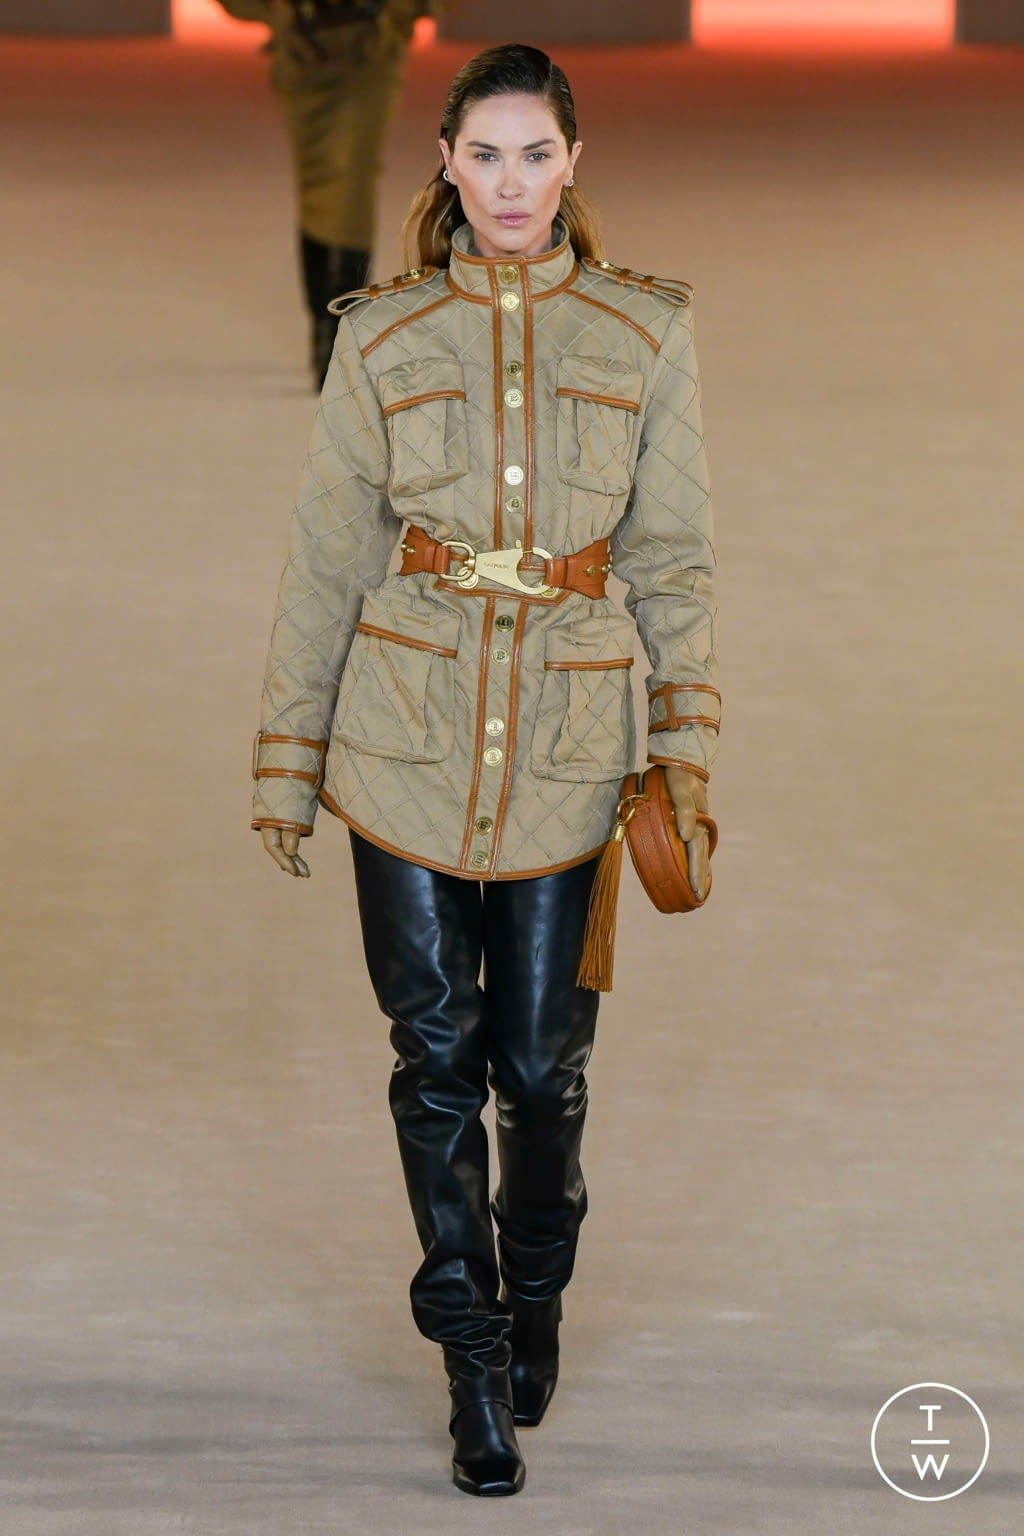 Fashion Week Paris Fall/Winter 2020 look 13 de la collection Balmain womenswear